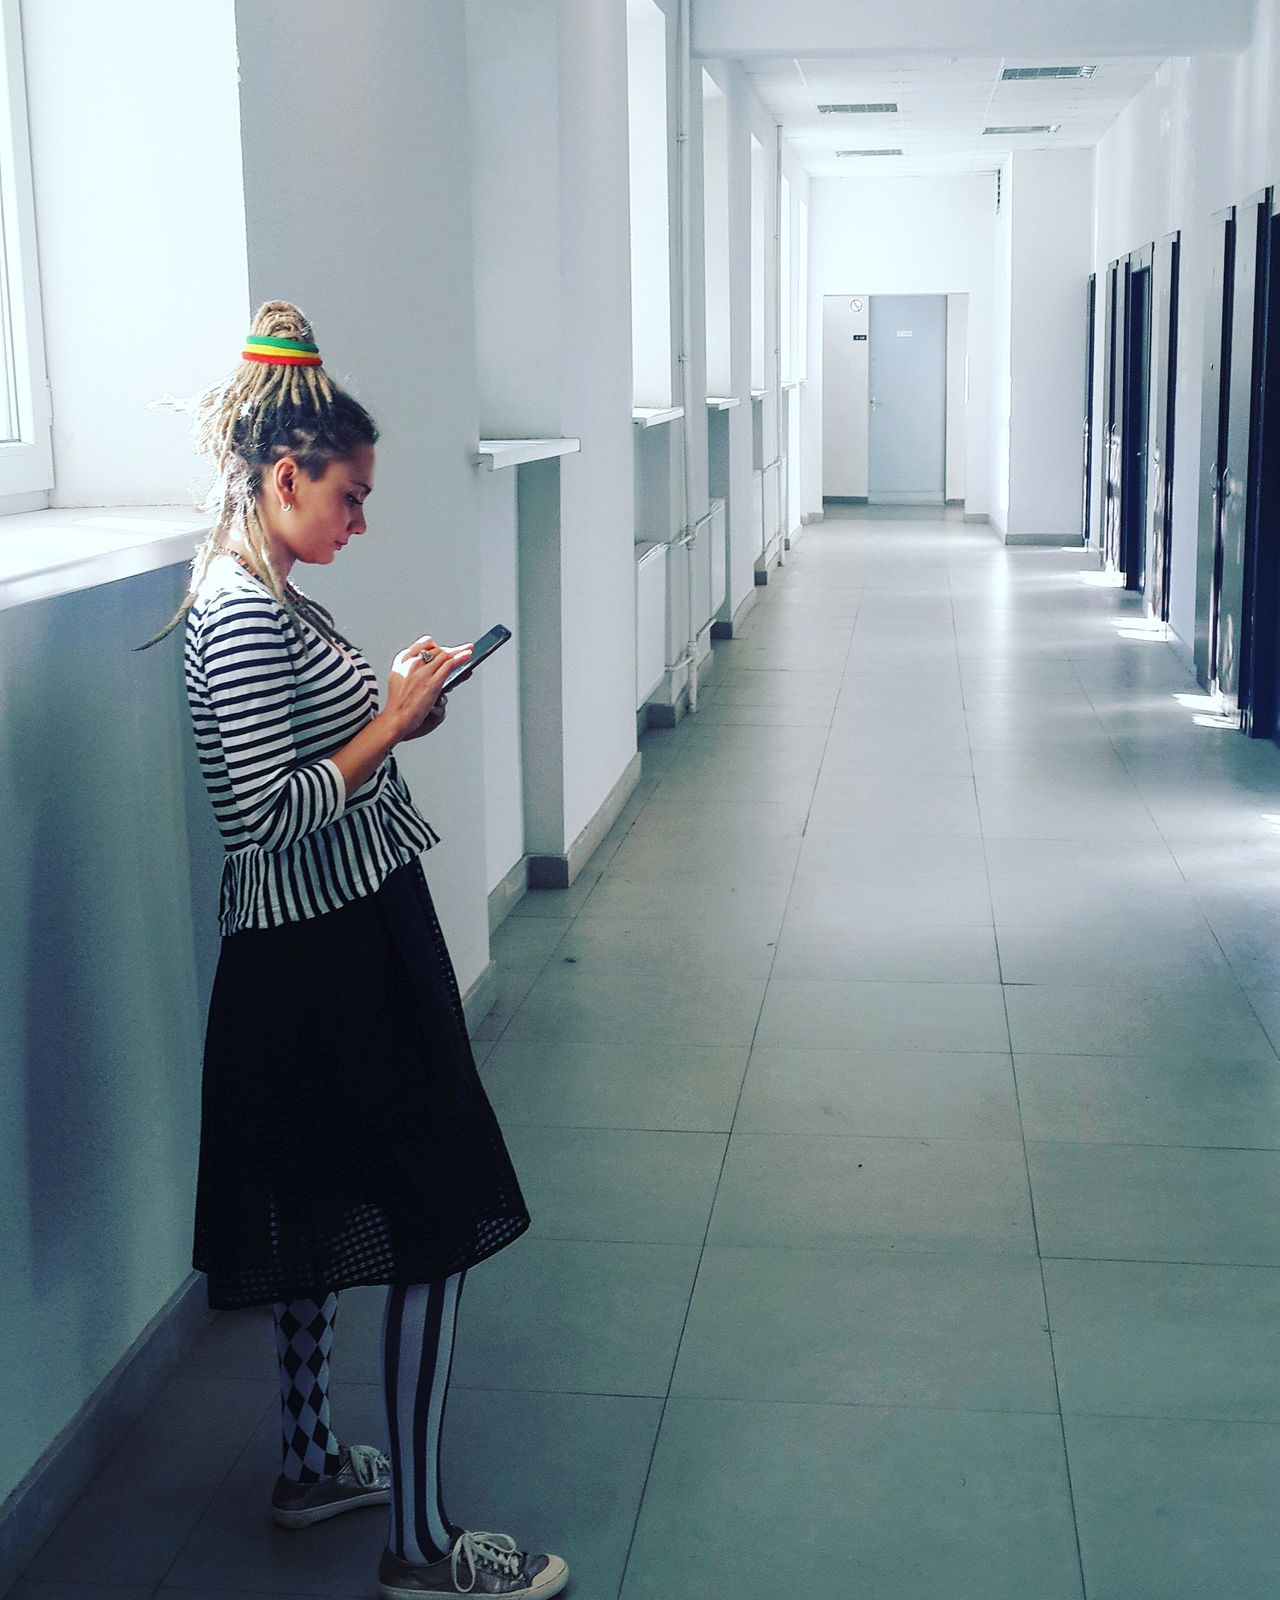 Lifestyles Corridor Casual Clothing Architectural Column Day Focus On Foreground Young Adult Architectural Feature The Way Forward Diminishing Perspective Colonnade Passageway Harleyquinn Braided Hair